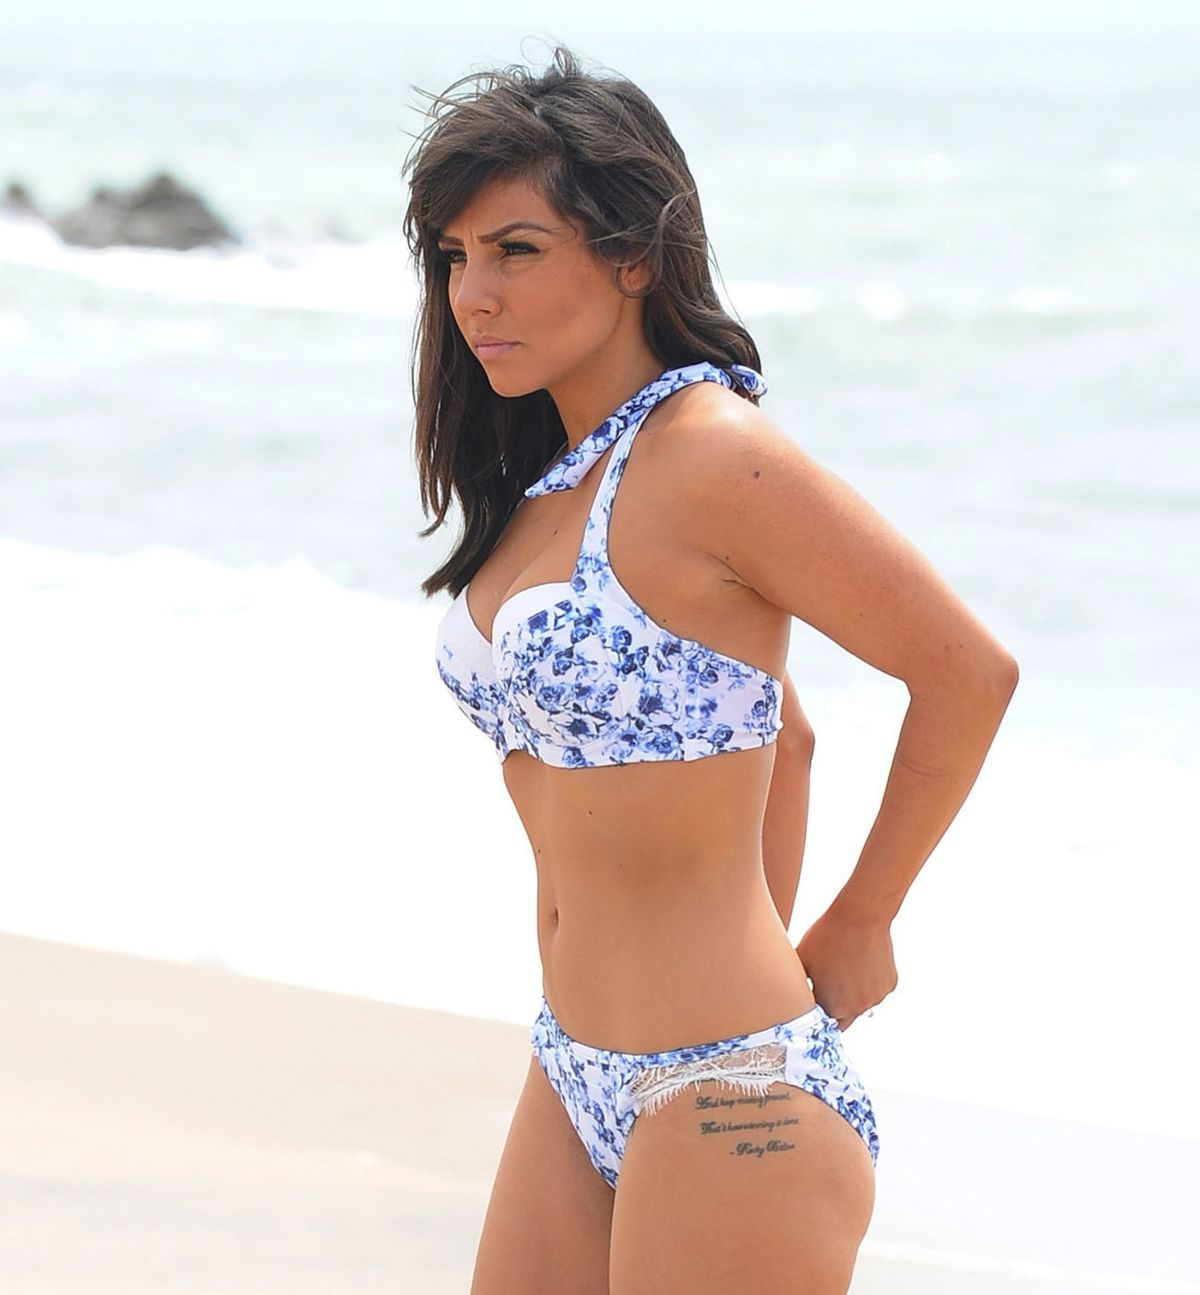 Image result for ROXANNE PALLETT